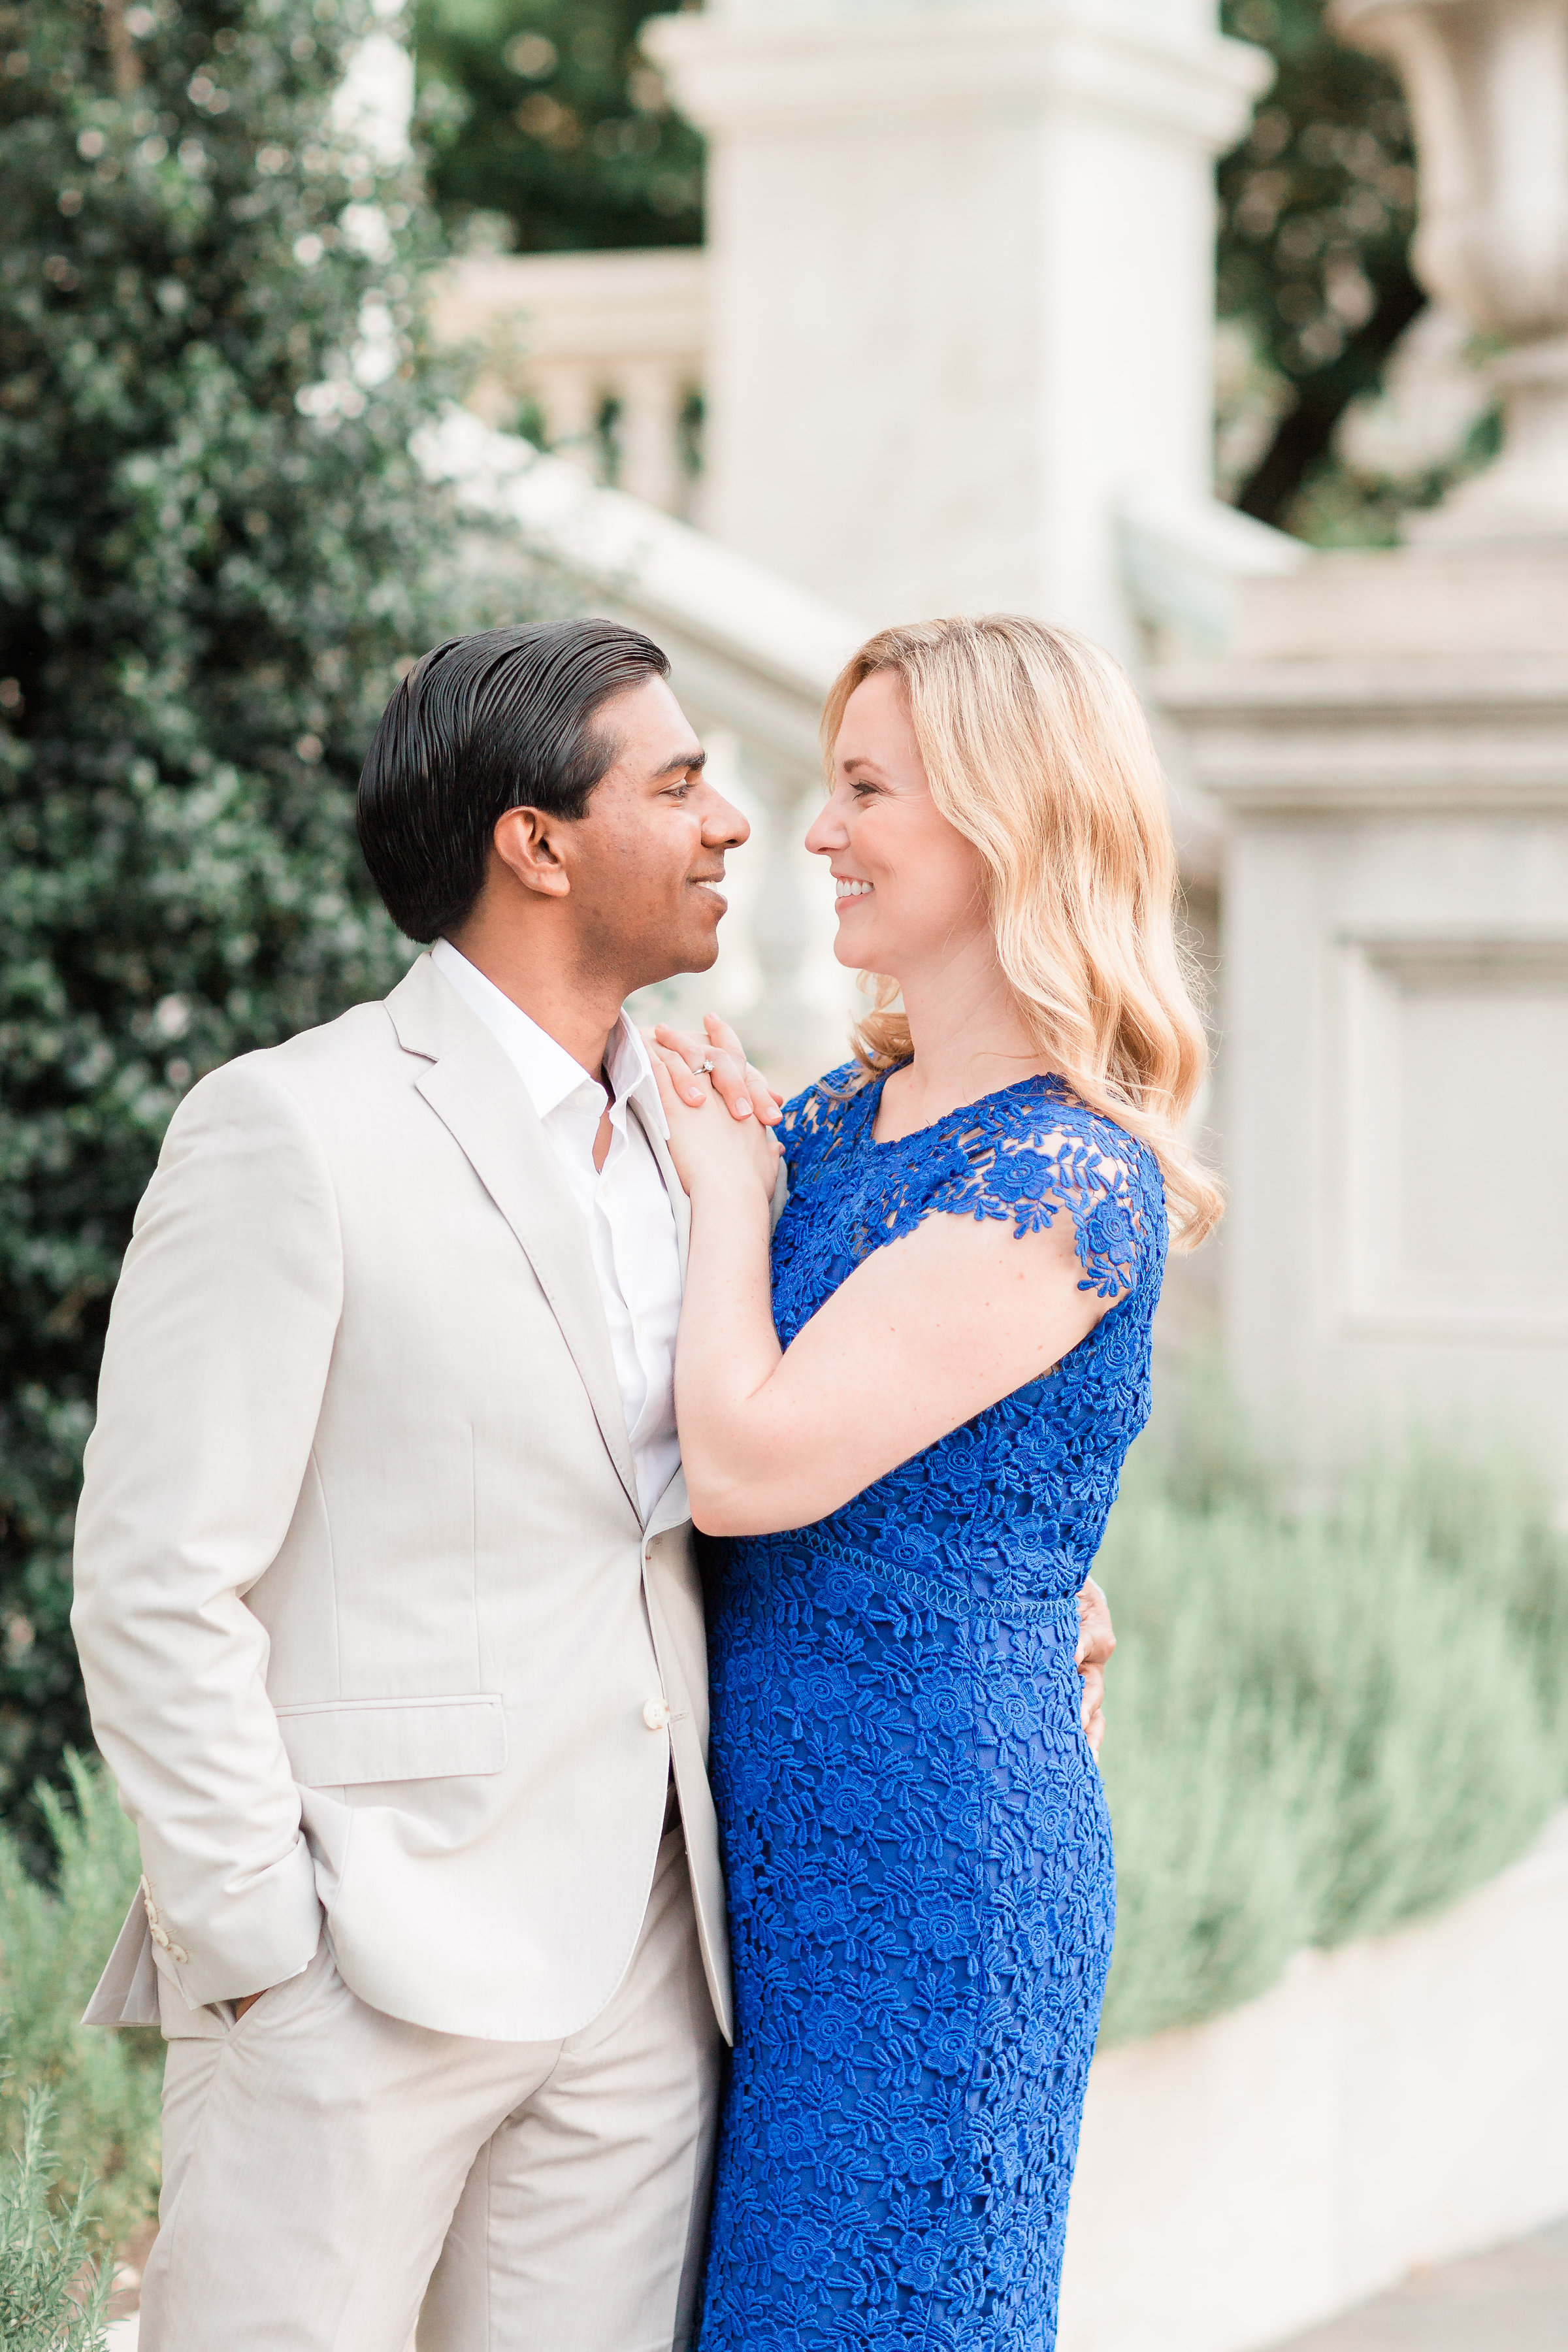 Downtown Baltimore Engagement Session with Alicia Lacey Photography-52.jpg